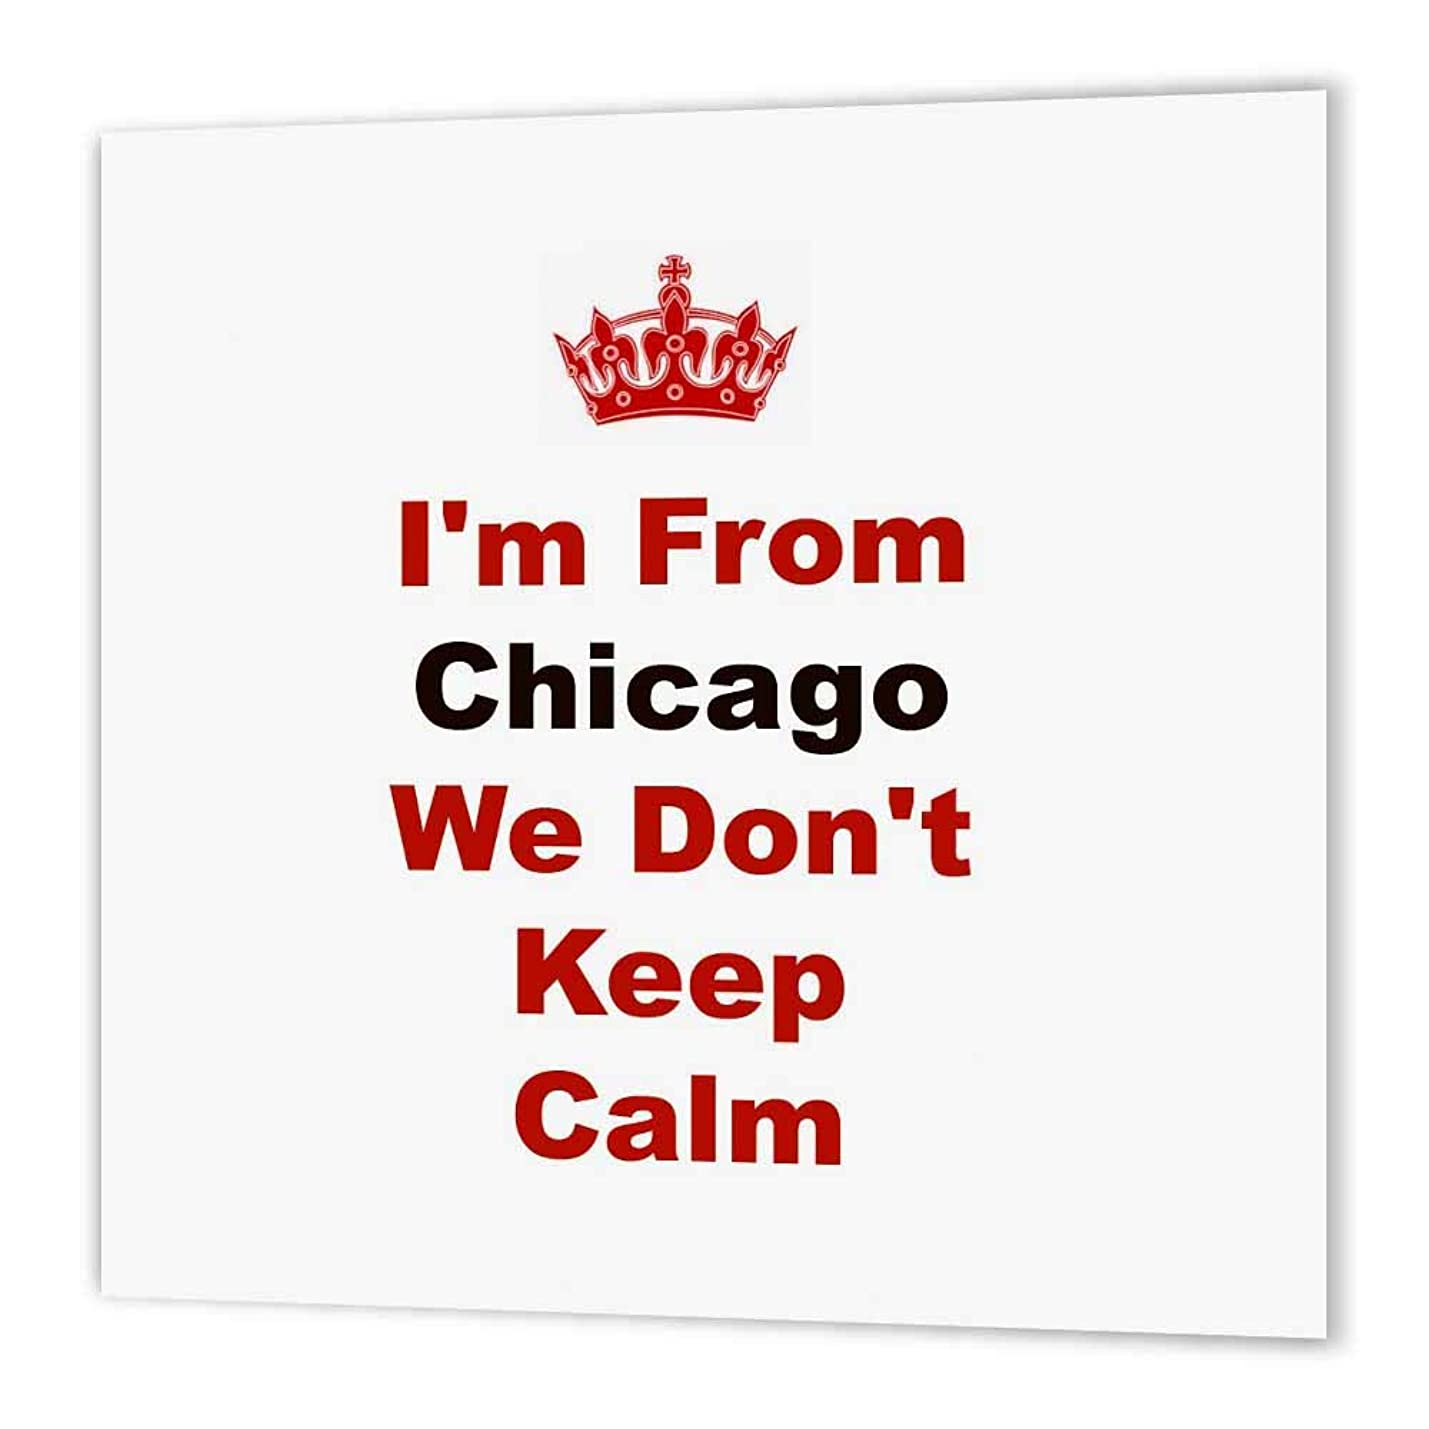 3dRose ht_180038_3 Don't Keep Calm, Chicago, Red and Black Lettering on White Background-Iron on Heat Transfer Paper for White Material, 10 by 10-Inch jbdhbxsnfkdld462